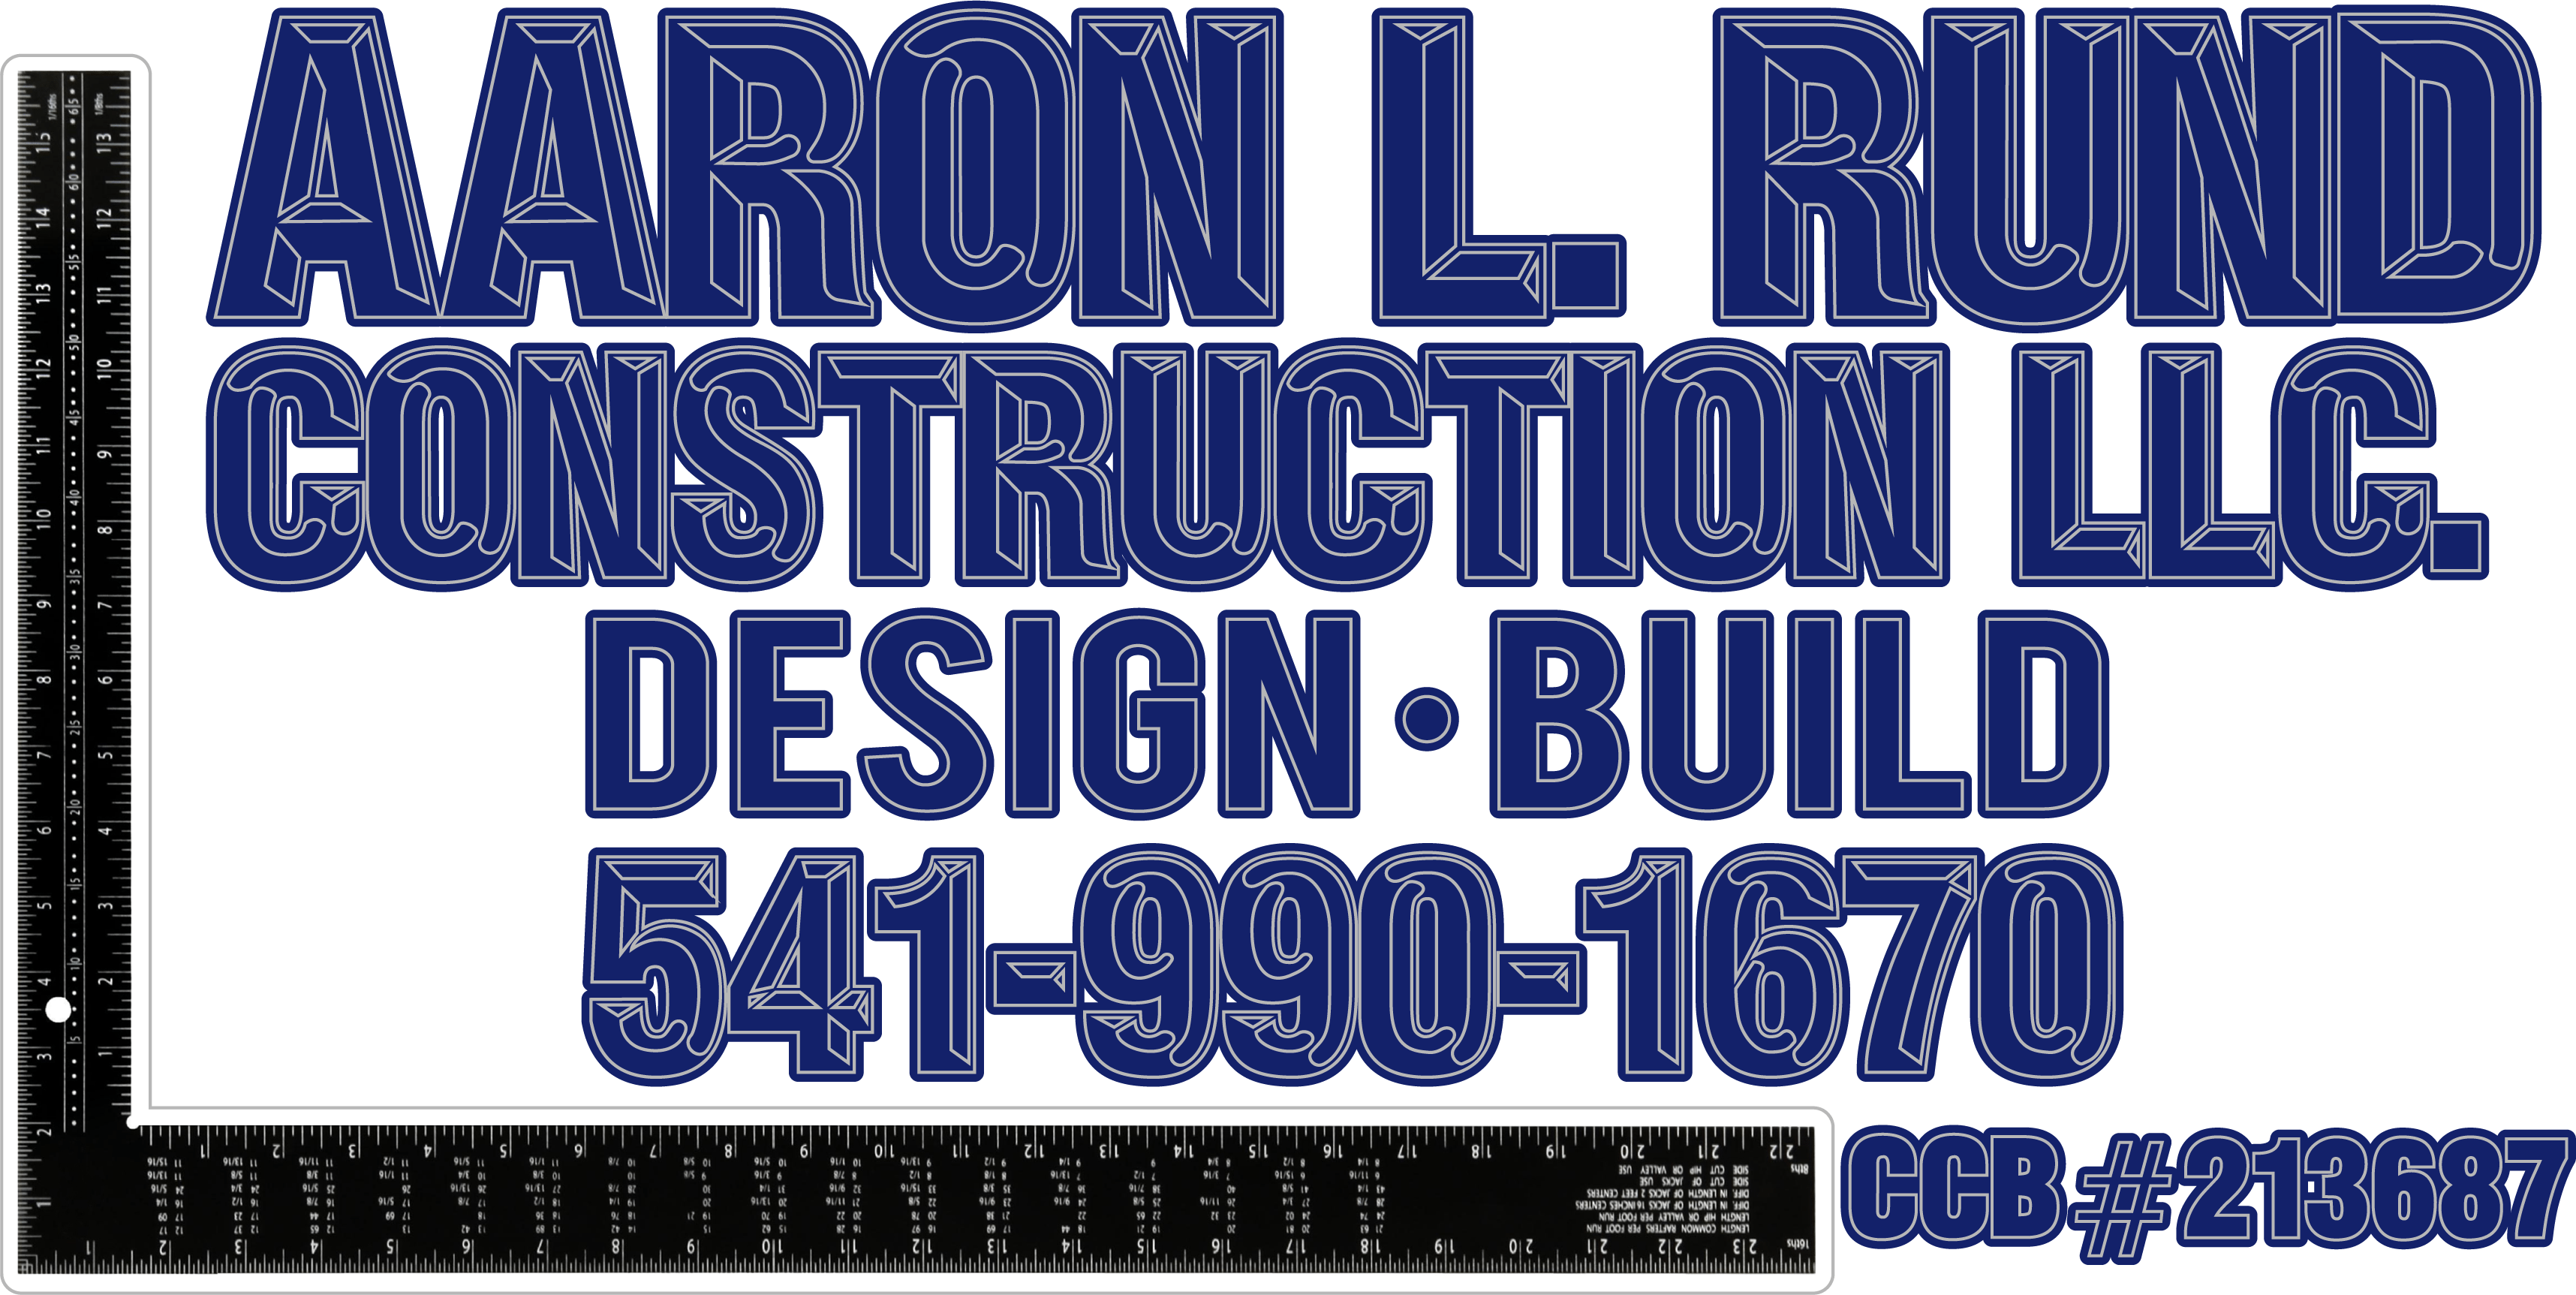 Aaron L Rund Construction